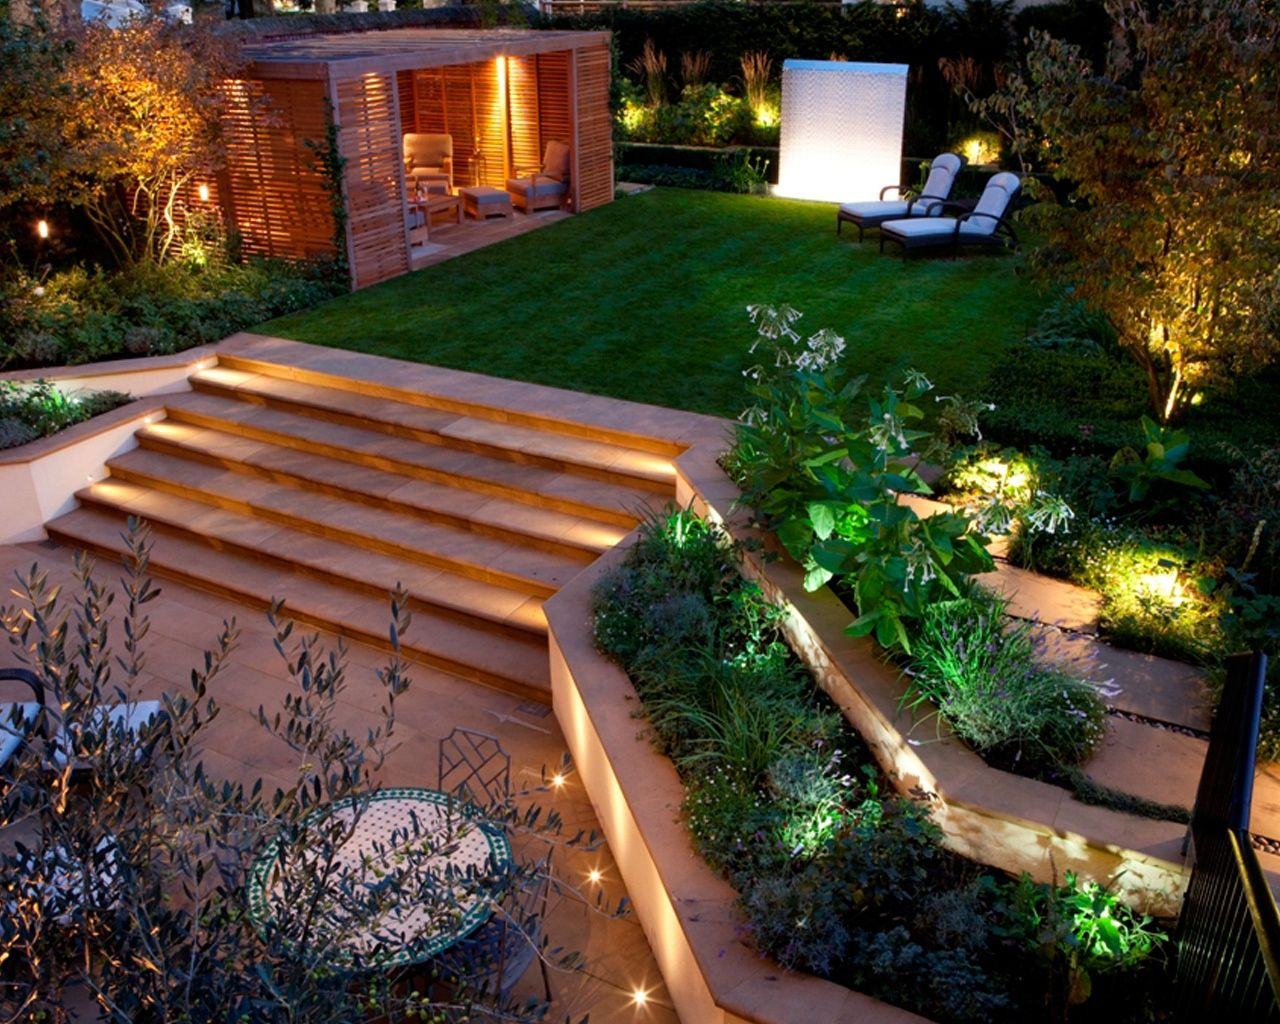 50 Modern Garden Design Ideas to Try in 2017 | Contemporary gardens ...